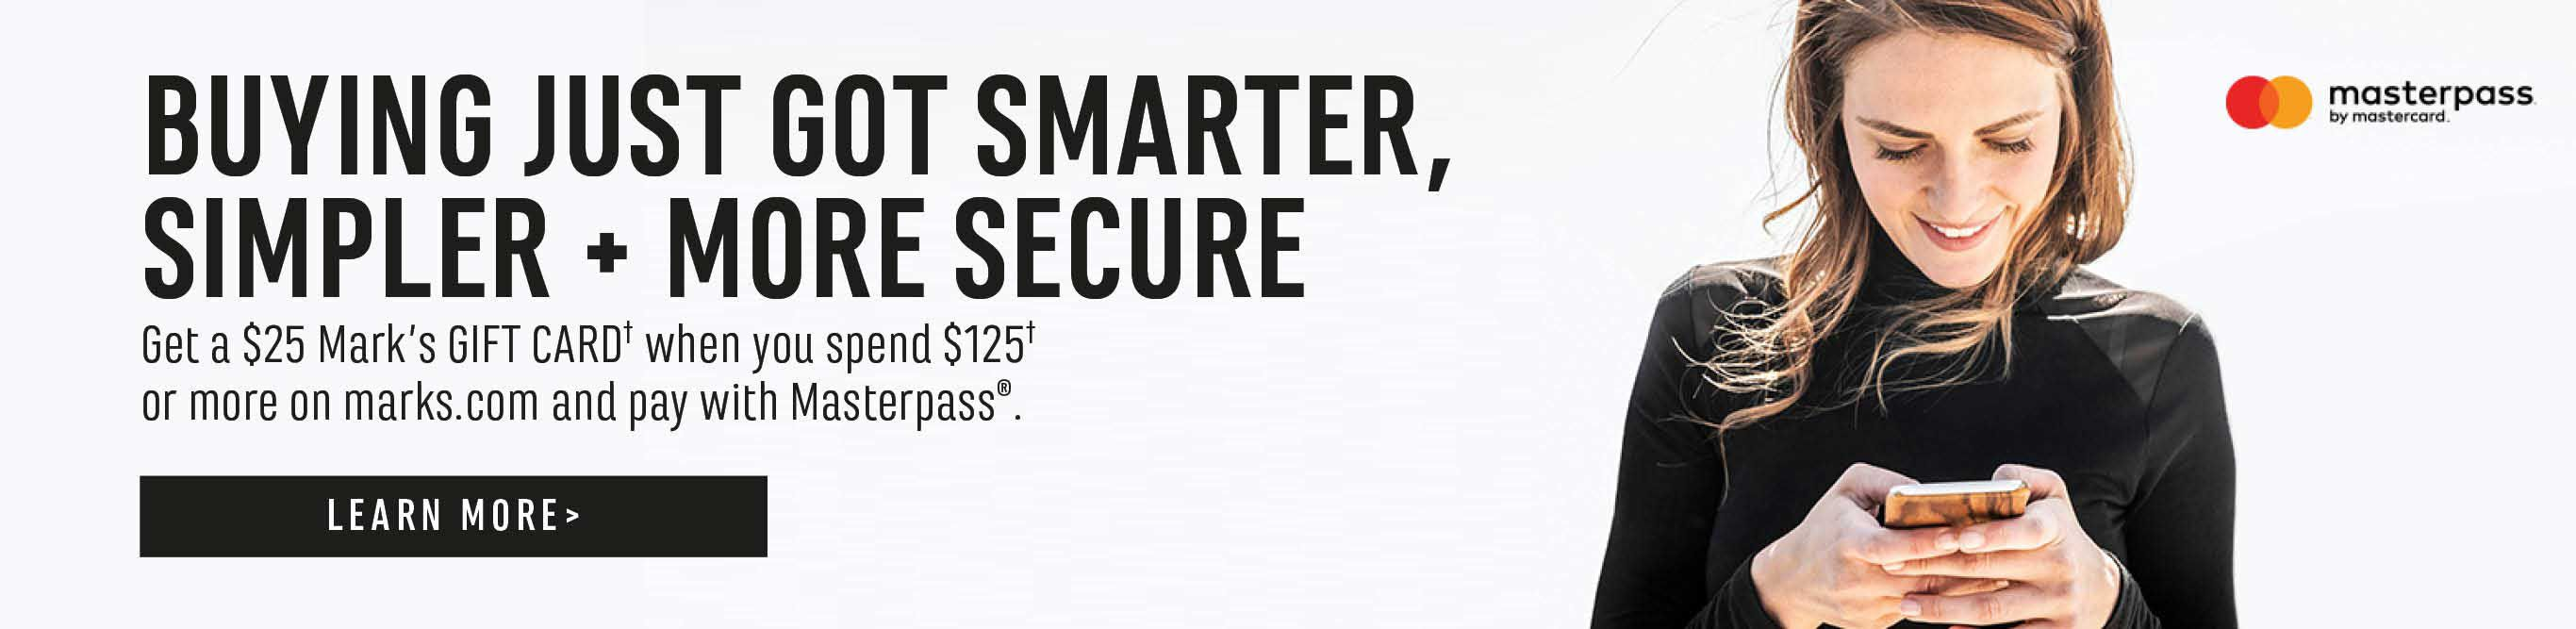 Buying just got smarter, simpler and more secure. Masterpass by Mastercard. Learn more.